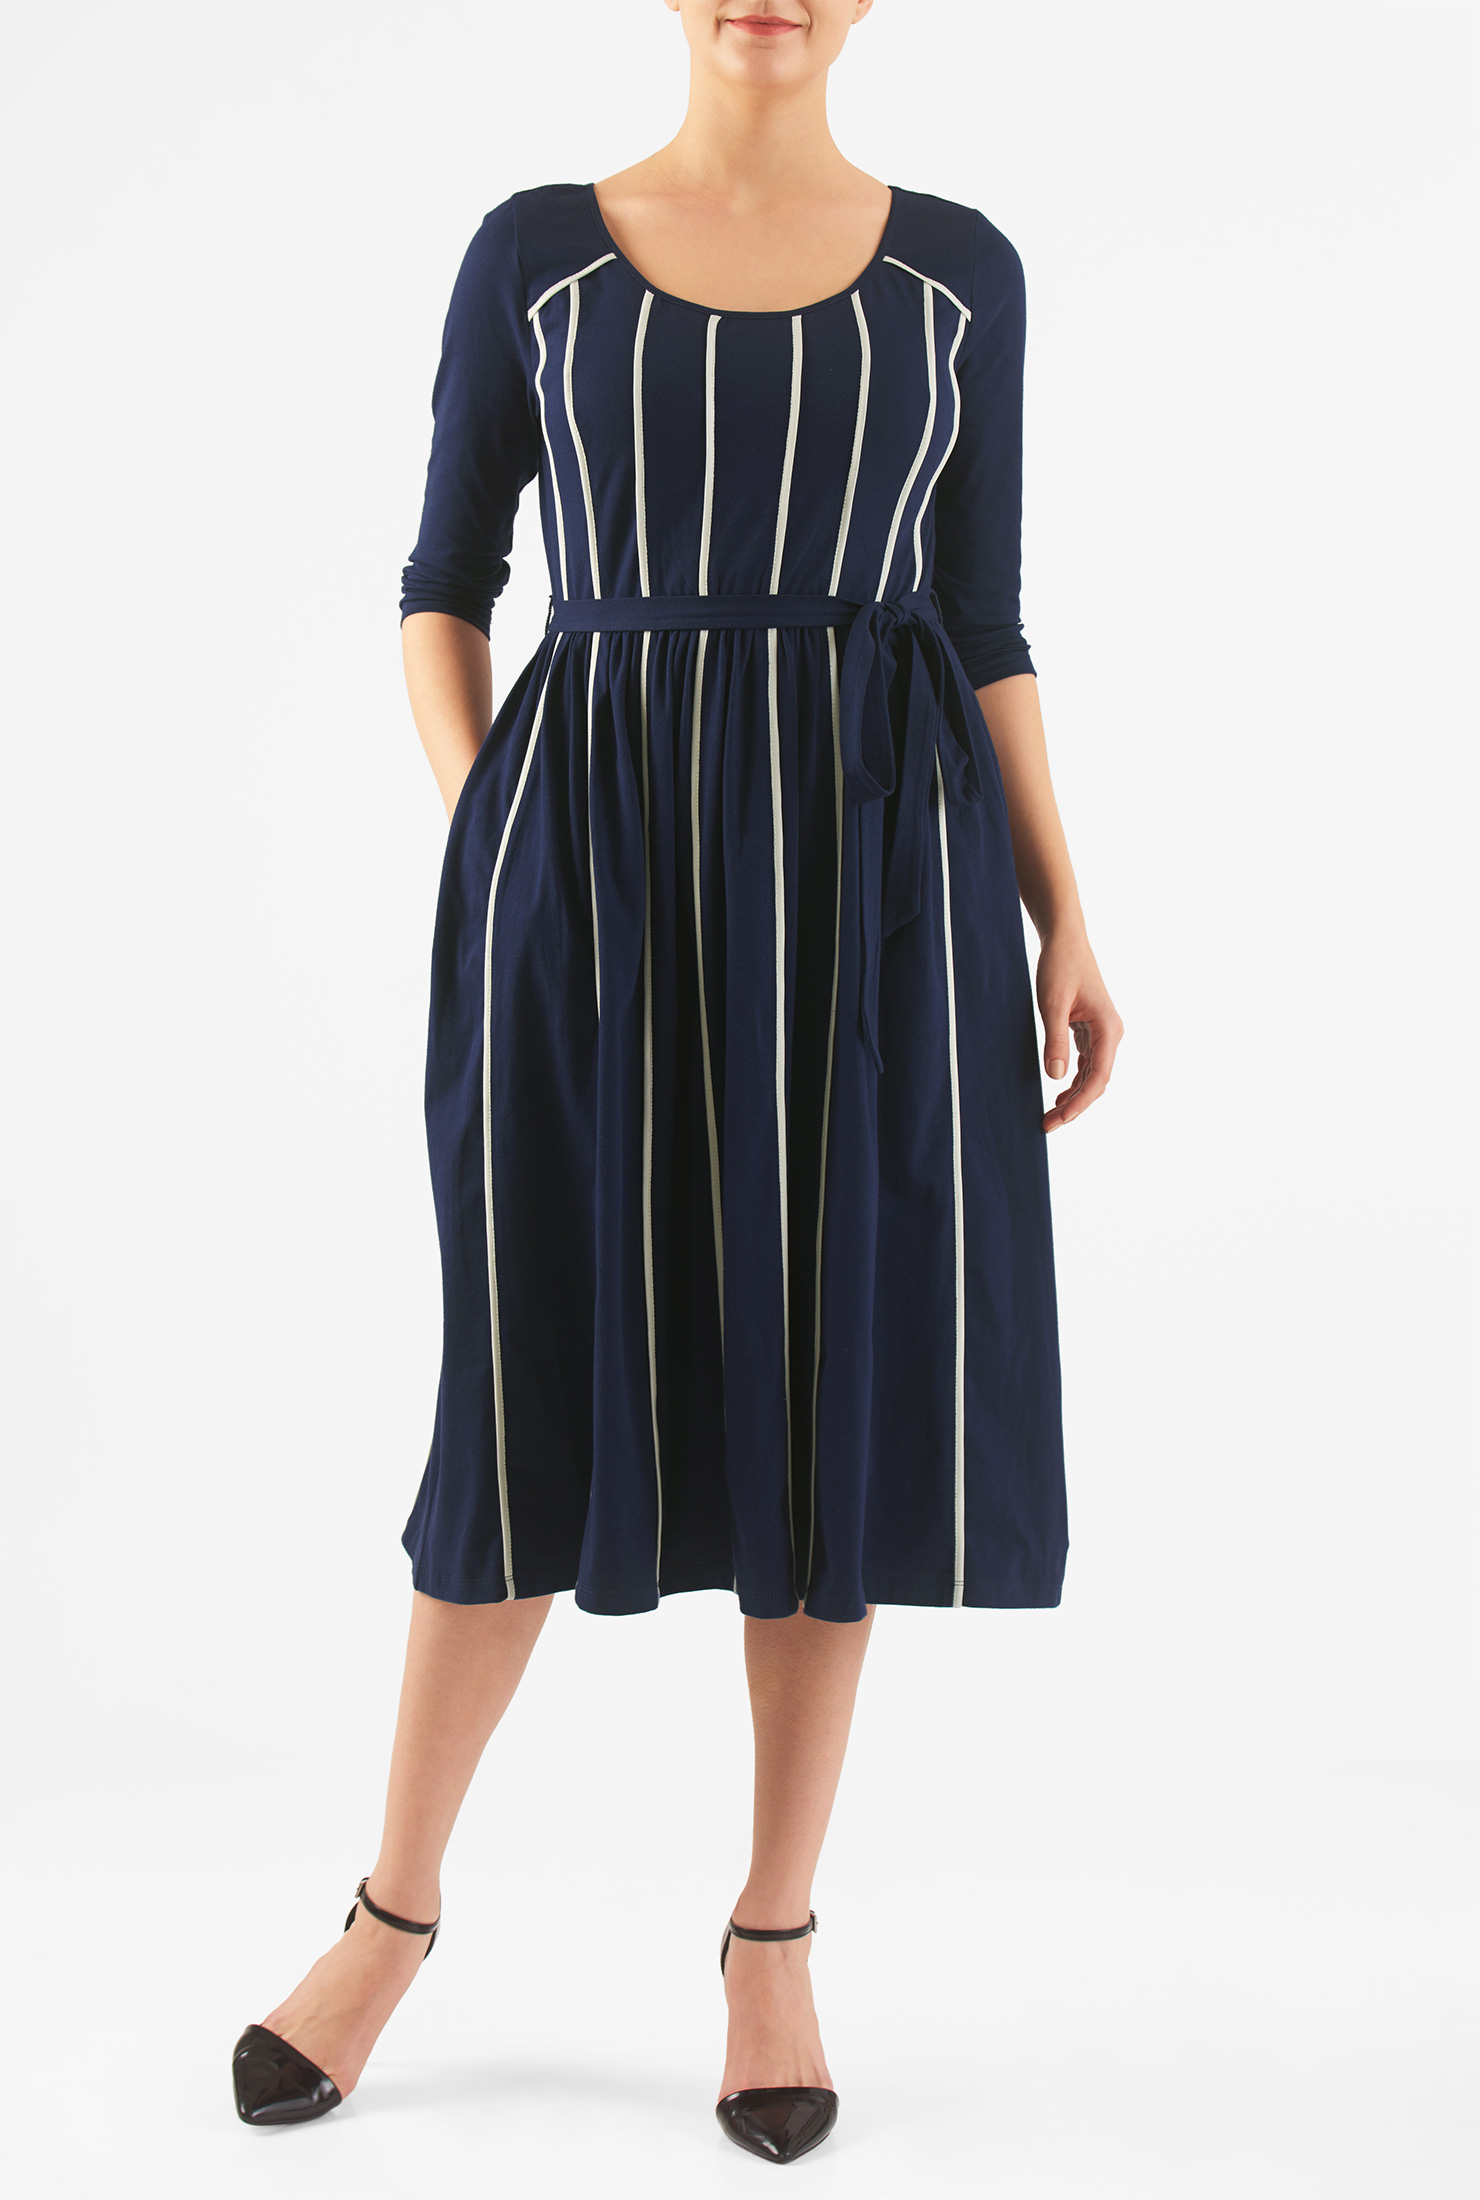 eShakti Women's Contrast stripe trim cotton knit dress CL0045871